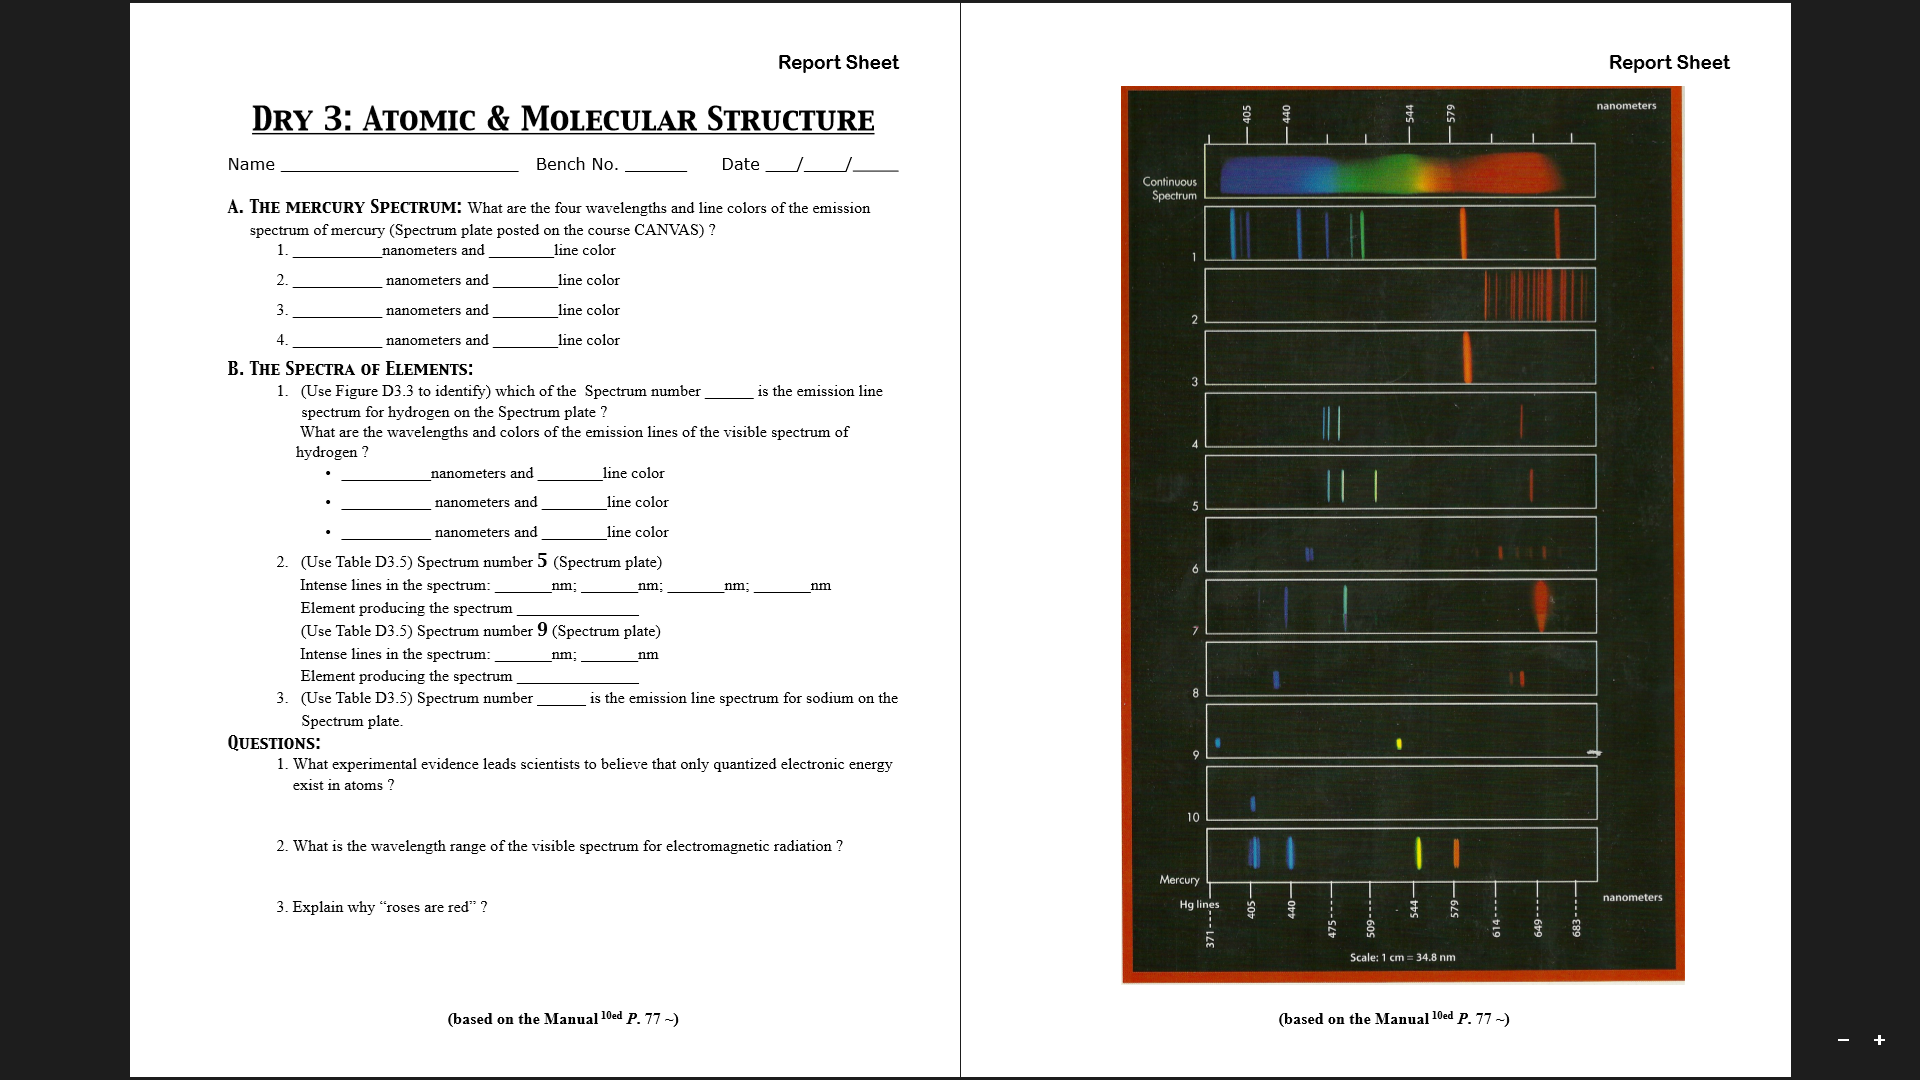 Image For A THE MERCURY SPECTRUM What Are The Four Wavelengths And Line Colors